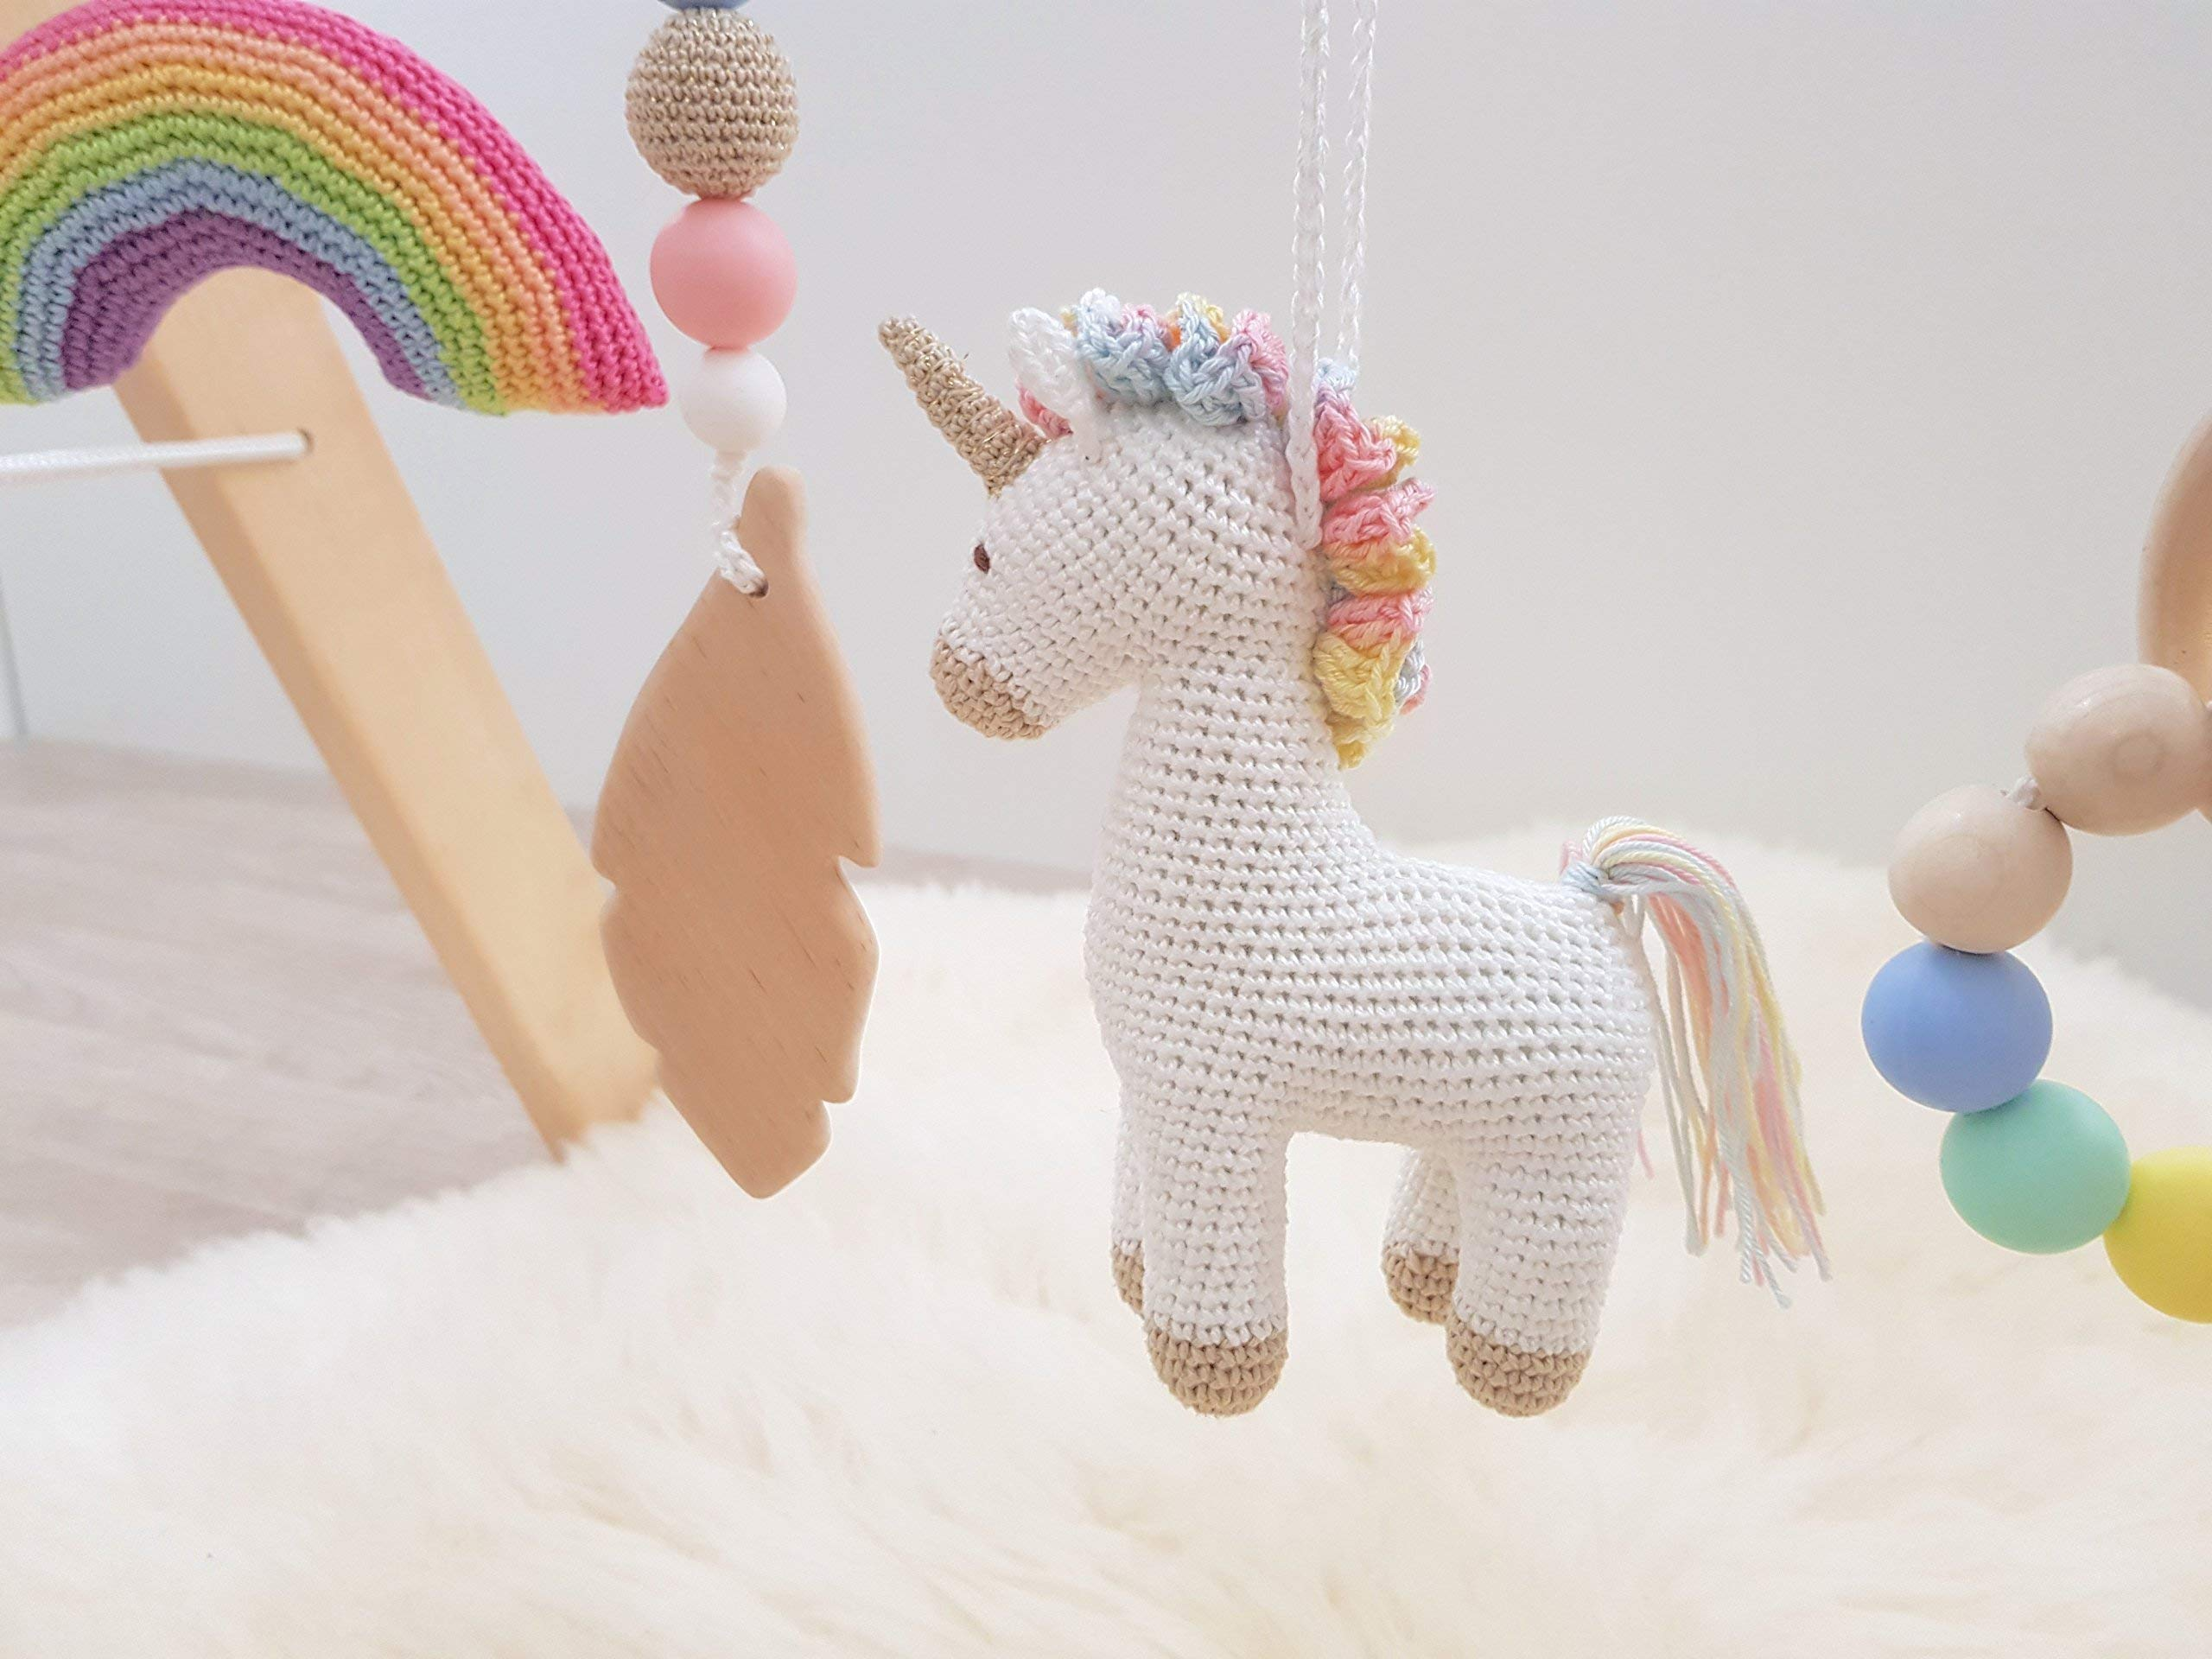 Rainbow Unicorn Baby Play Gym with 5 Mobiles: Unicorn, Rainbow, Mountain, Feather, Beaded Ring. Handmade by… 7